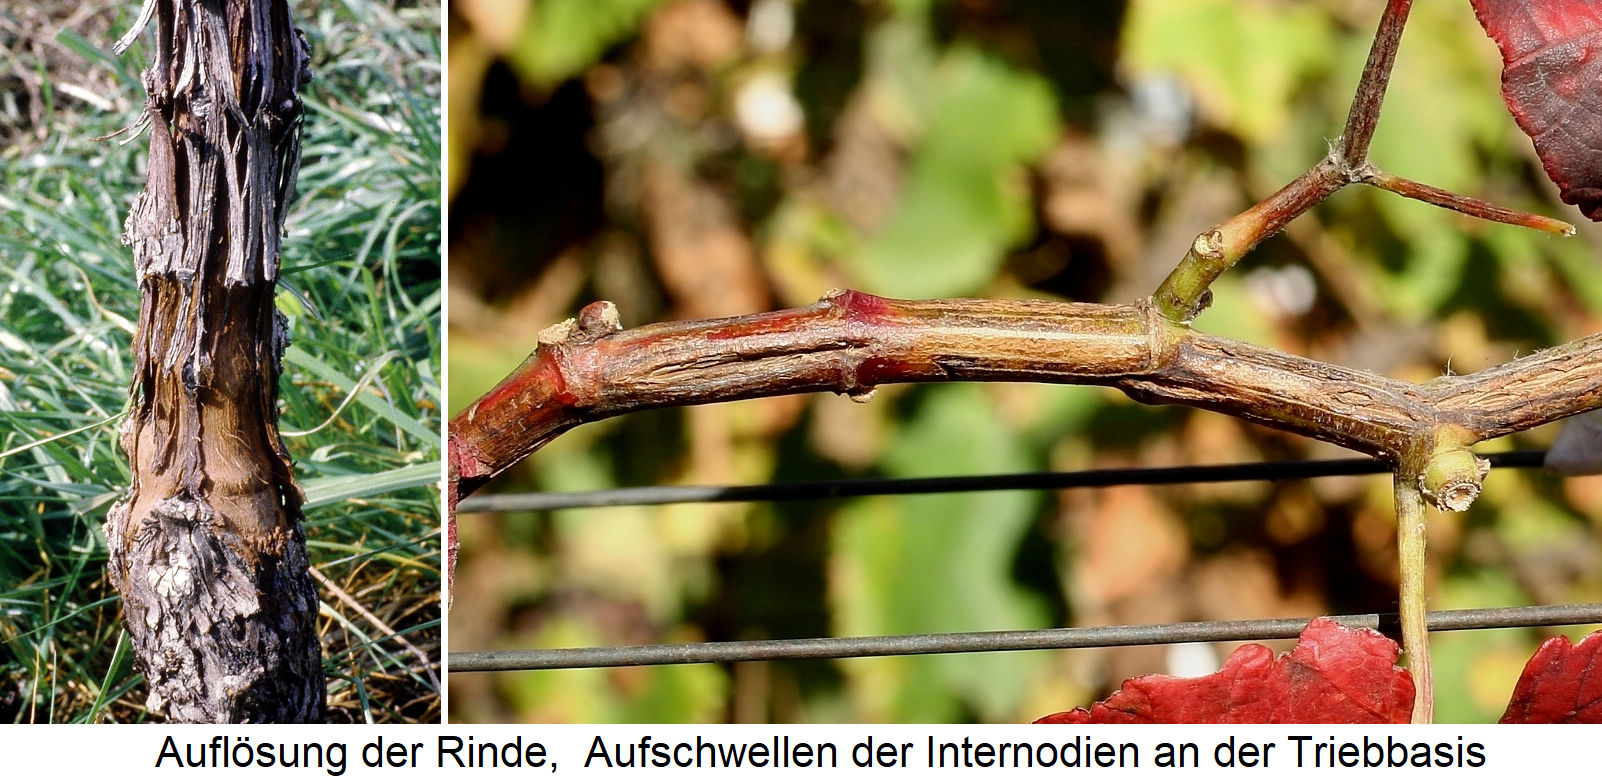 Rugose Wood Complex - Rind dissolution and swelling of the shoots on the internodes